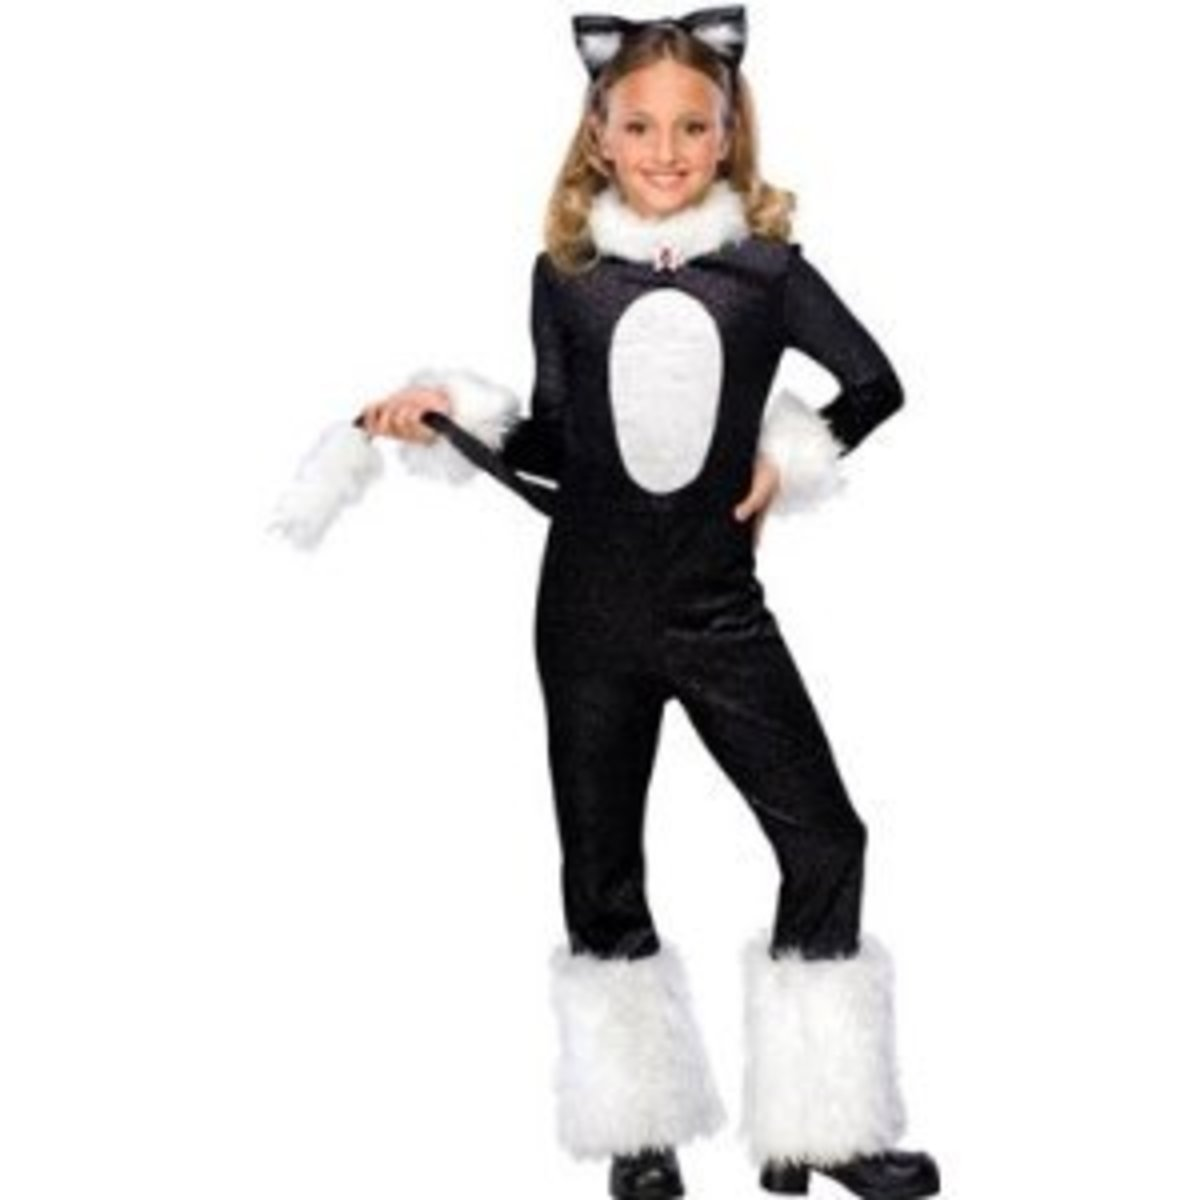 buy-animal-dress-up-costumes-for-kids-and-adults